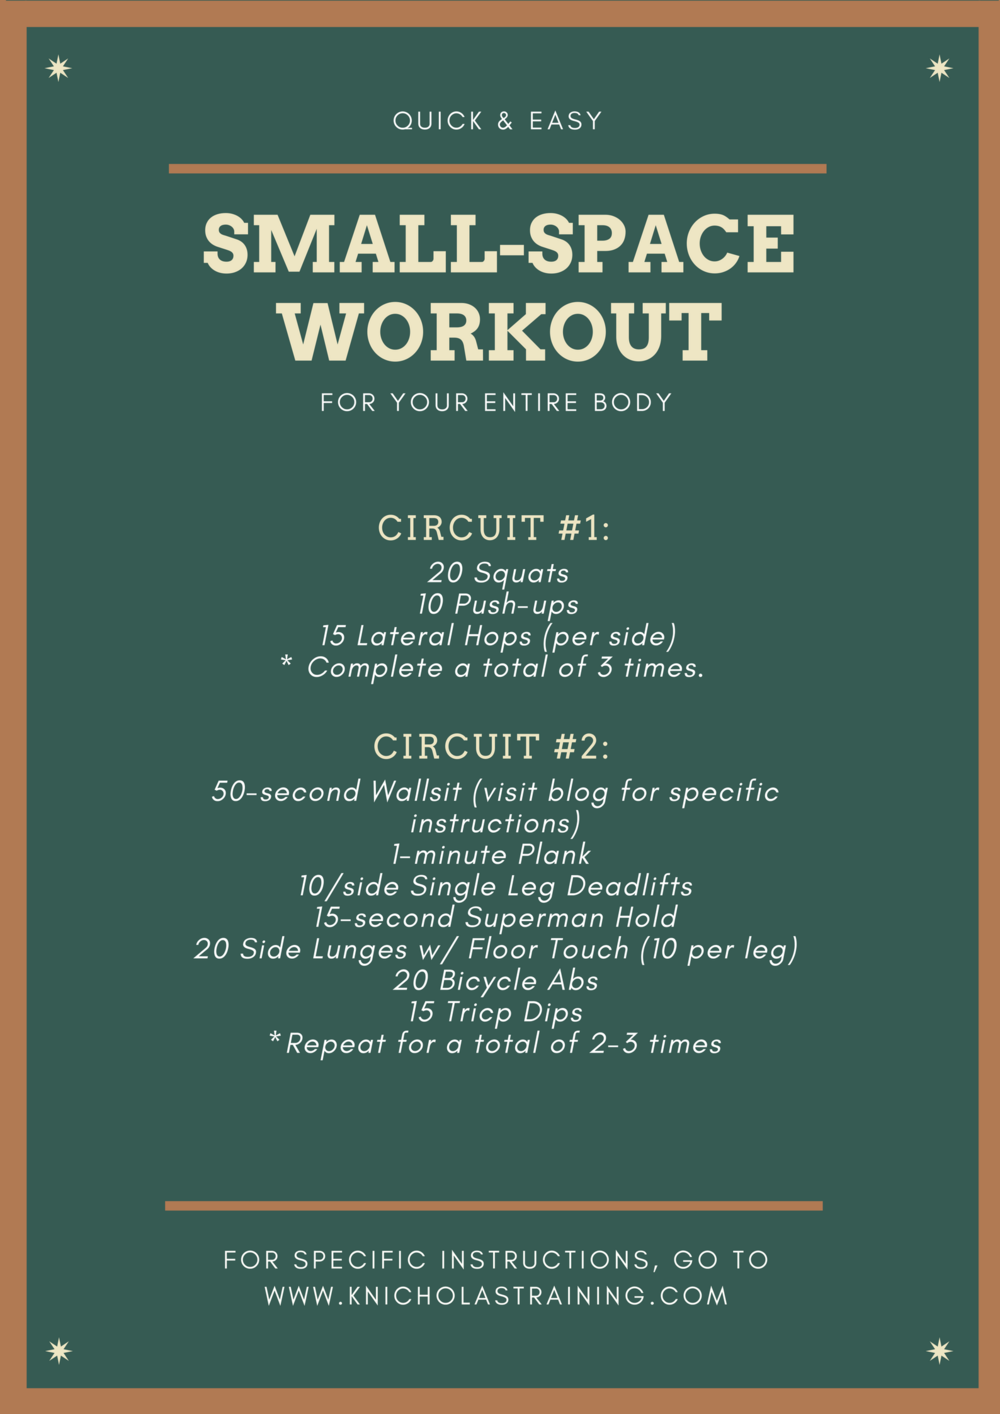 The Quick-and-Dirty Full-Body Workout for a SmallSpace